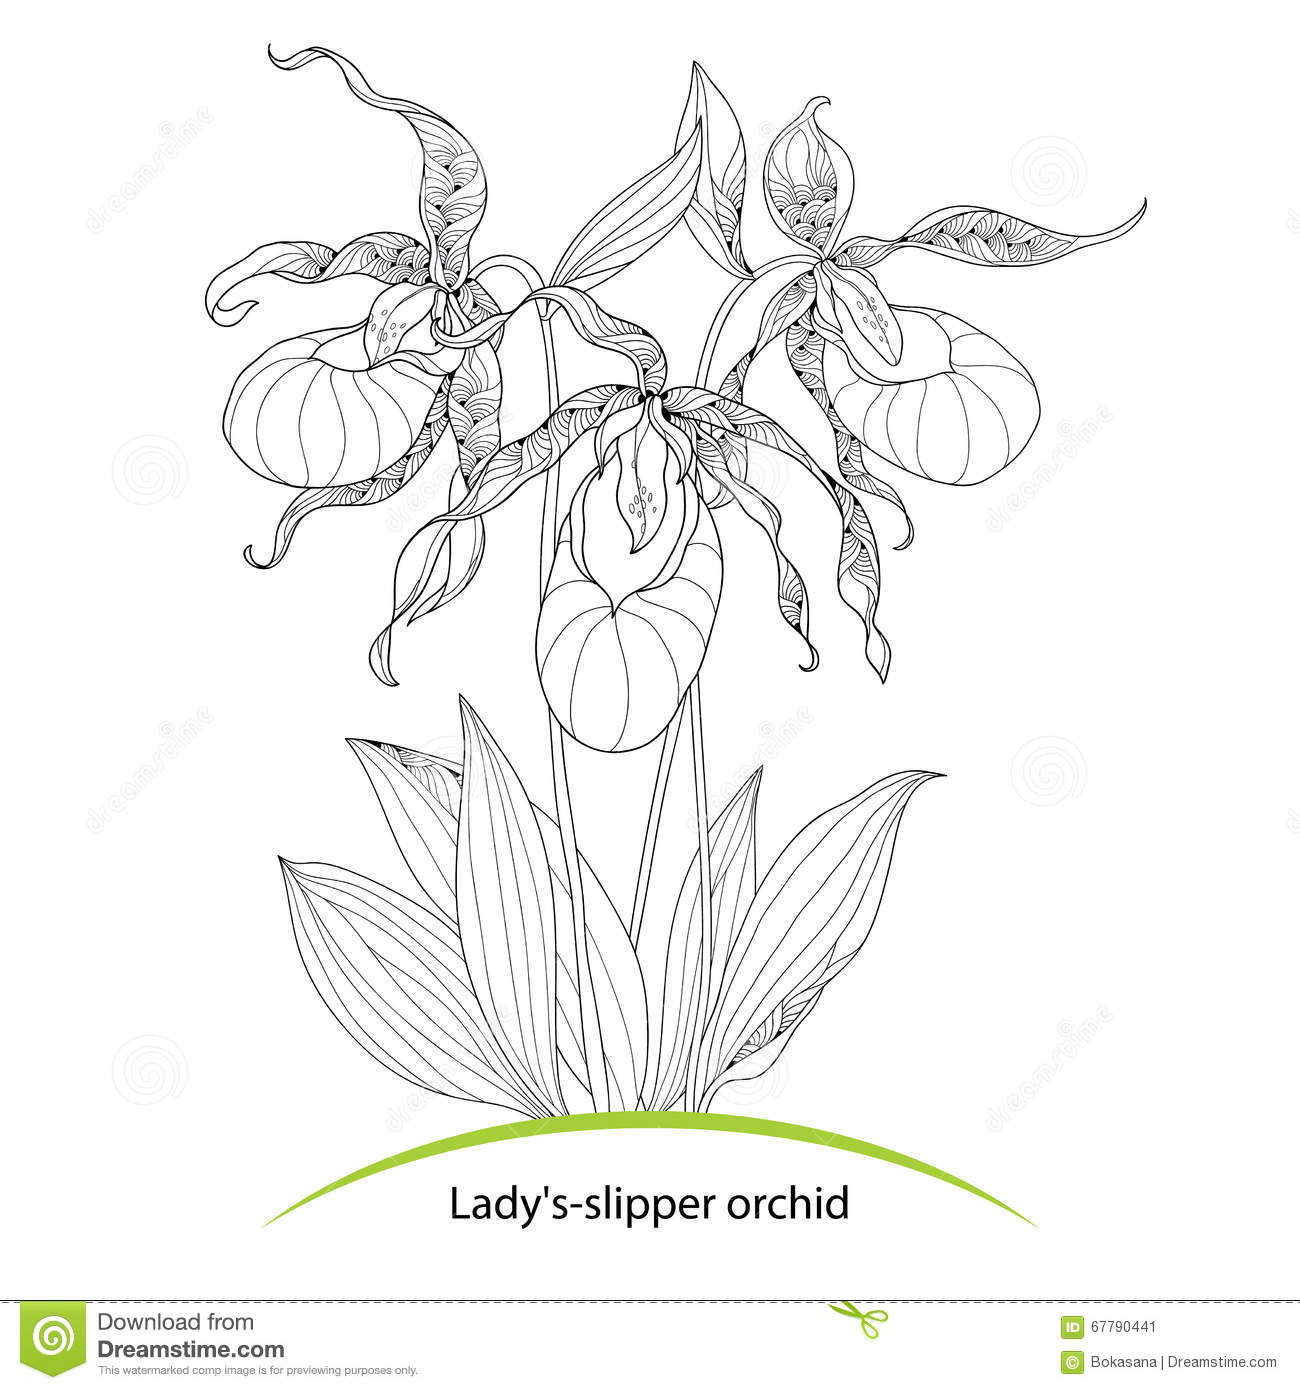 Cypripedium Calceolus Or Ladys Slipper Orchid Isolated On